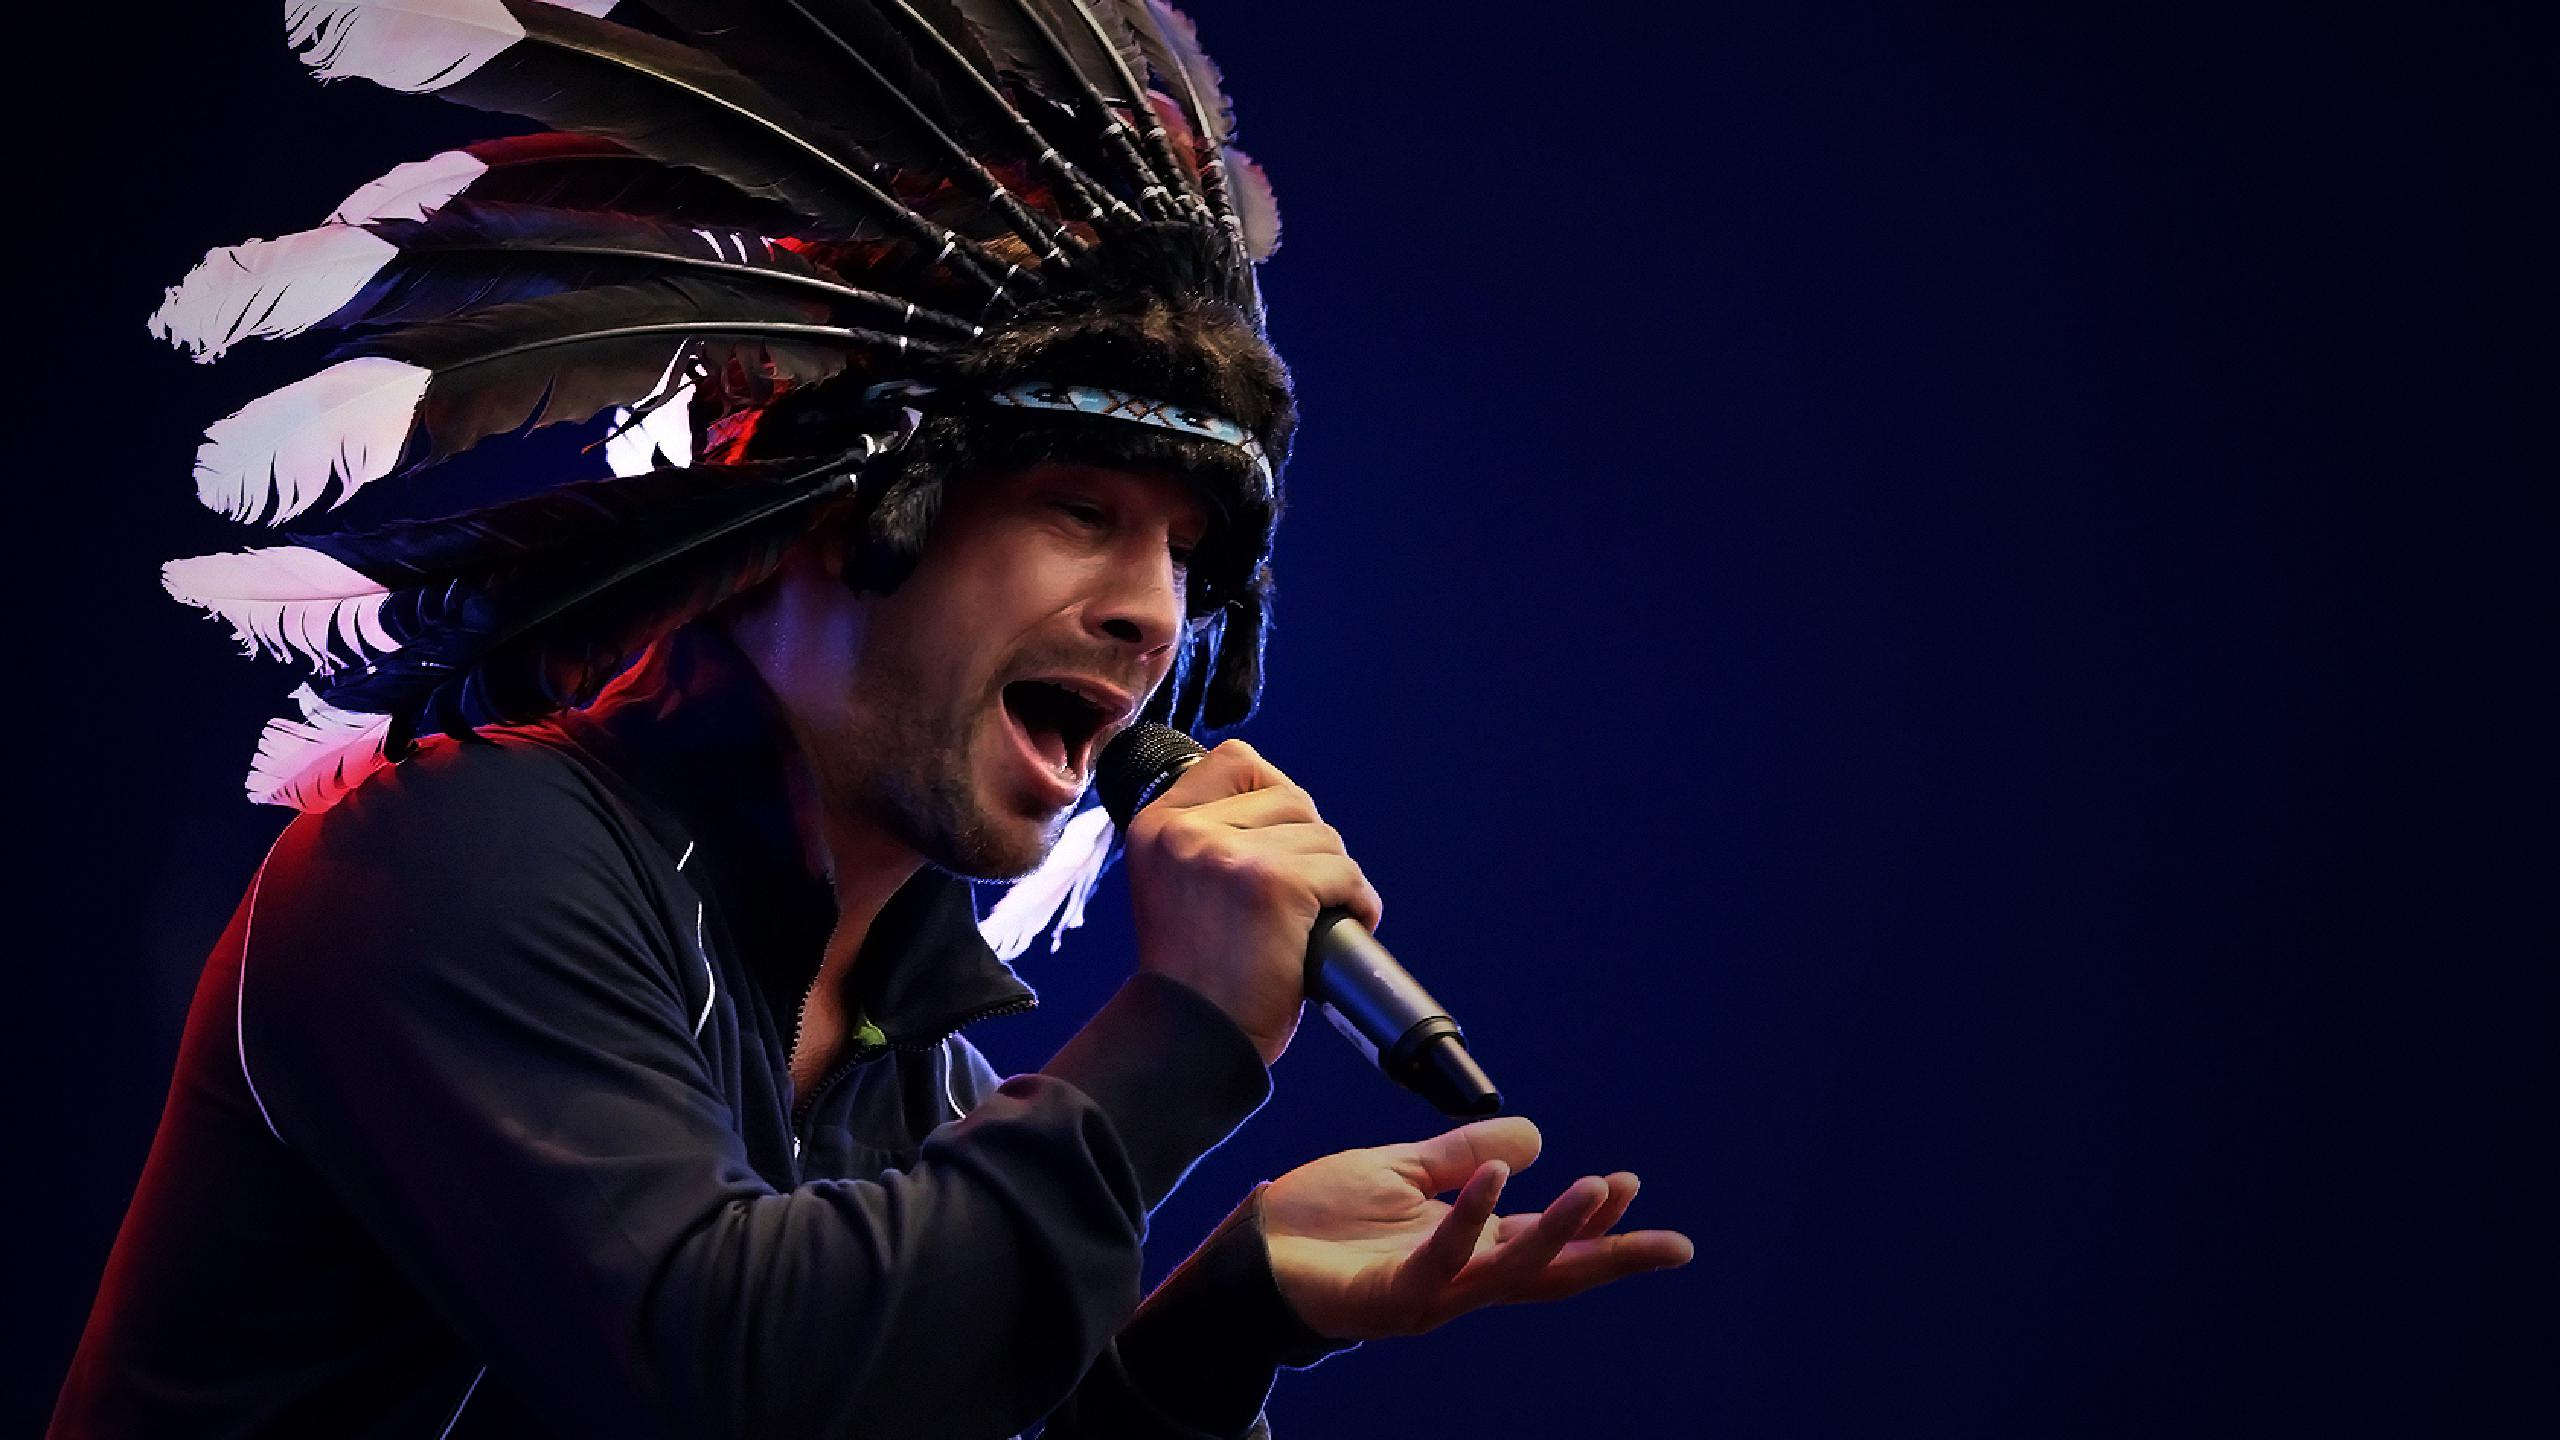 Jamiroquai Tour Dates 2020 Jamiroquai tour dates 2019 2020. Jamiroquai tickets and concerts